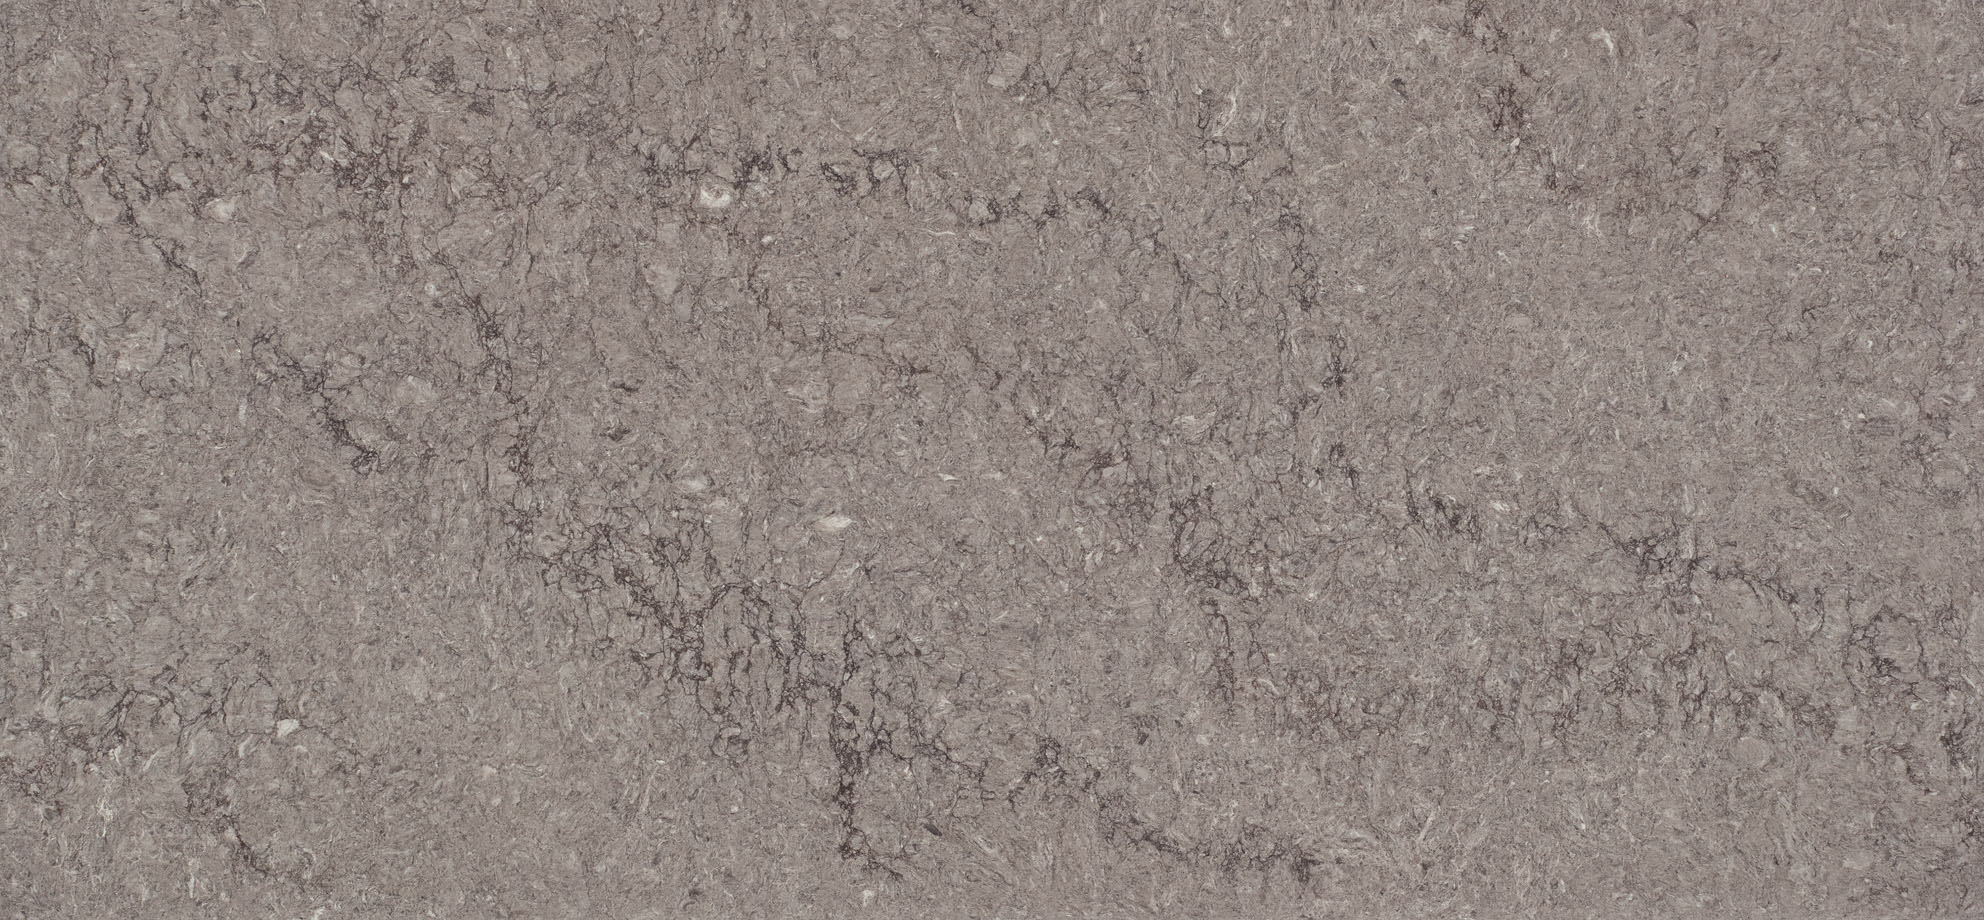 Turbine Grey Quartz countertop slab color sample